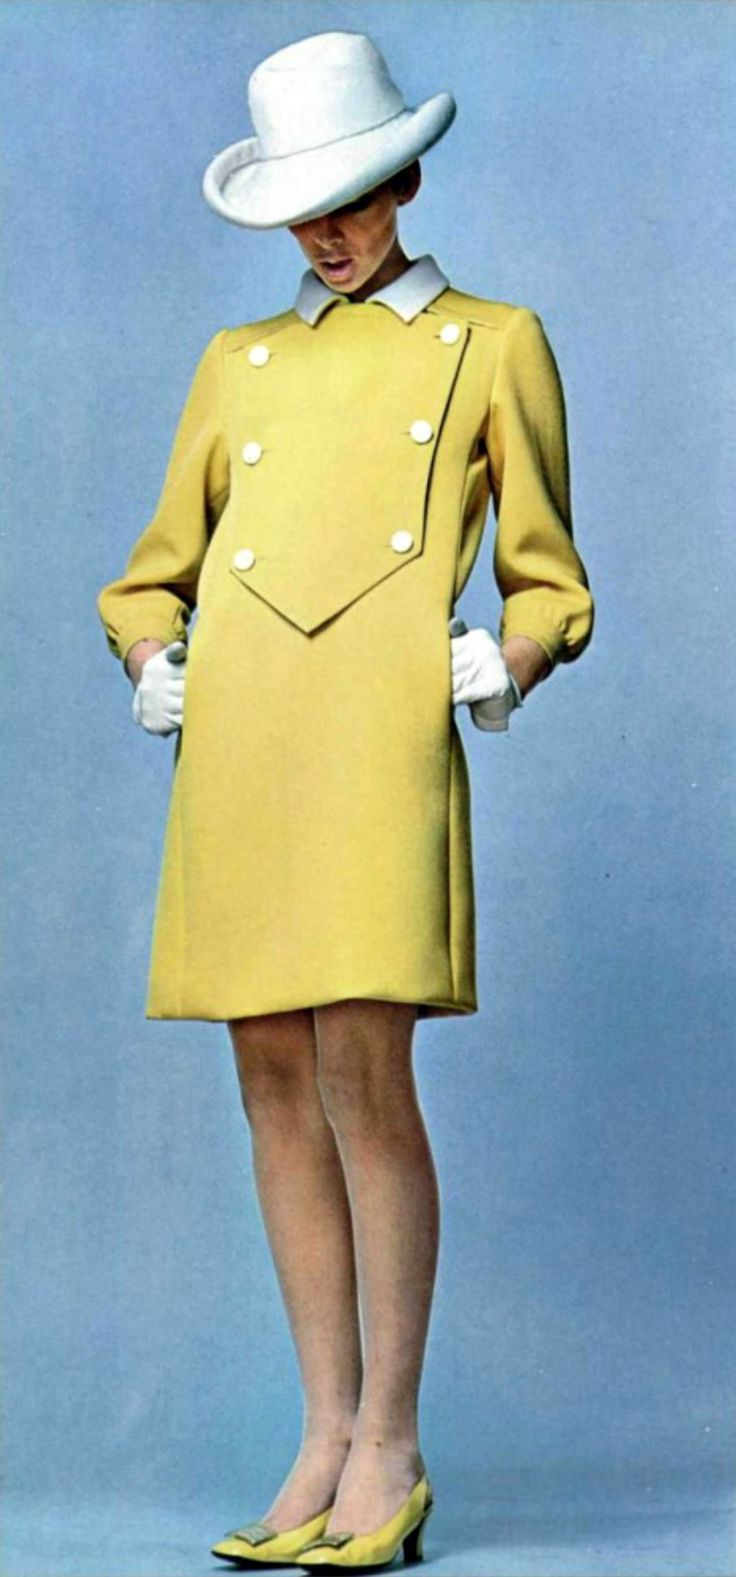 Guy Laroche L'officiel magazine 1967